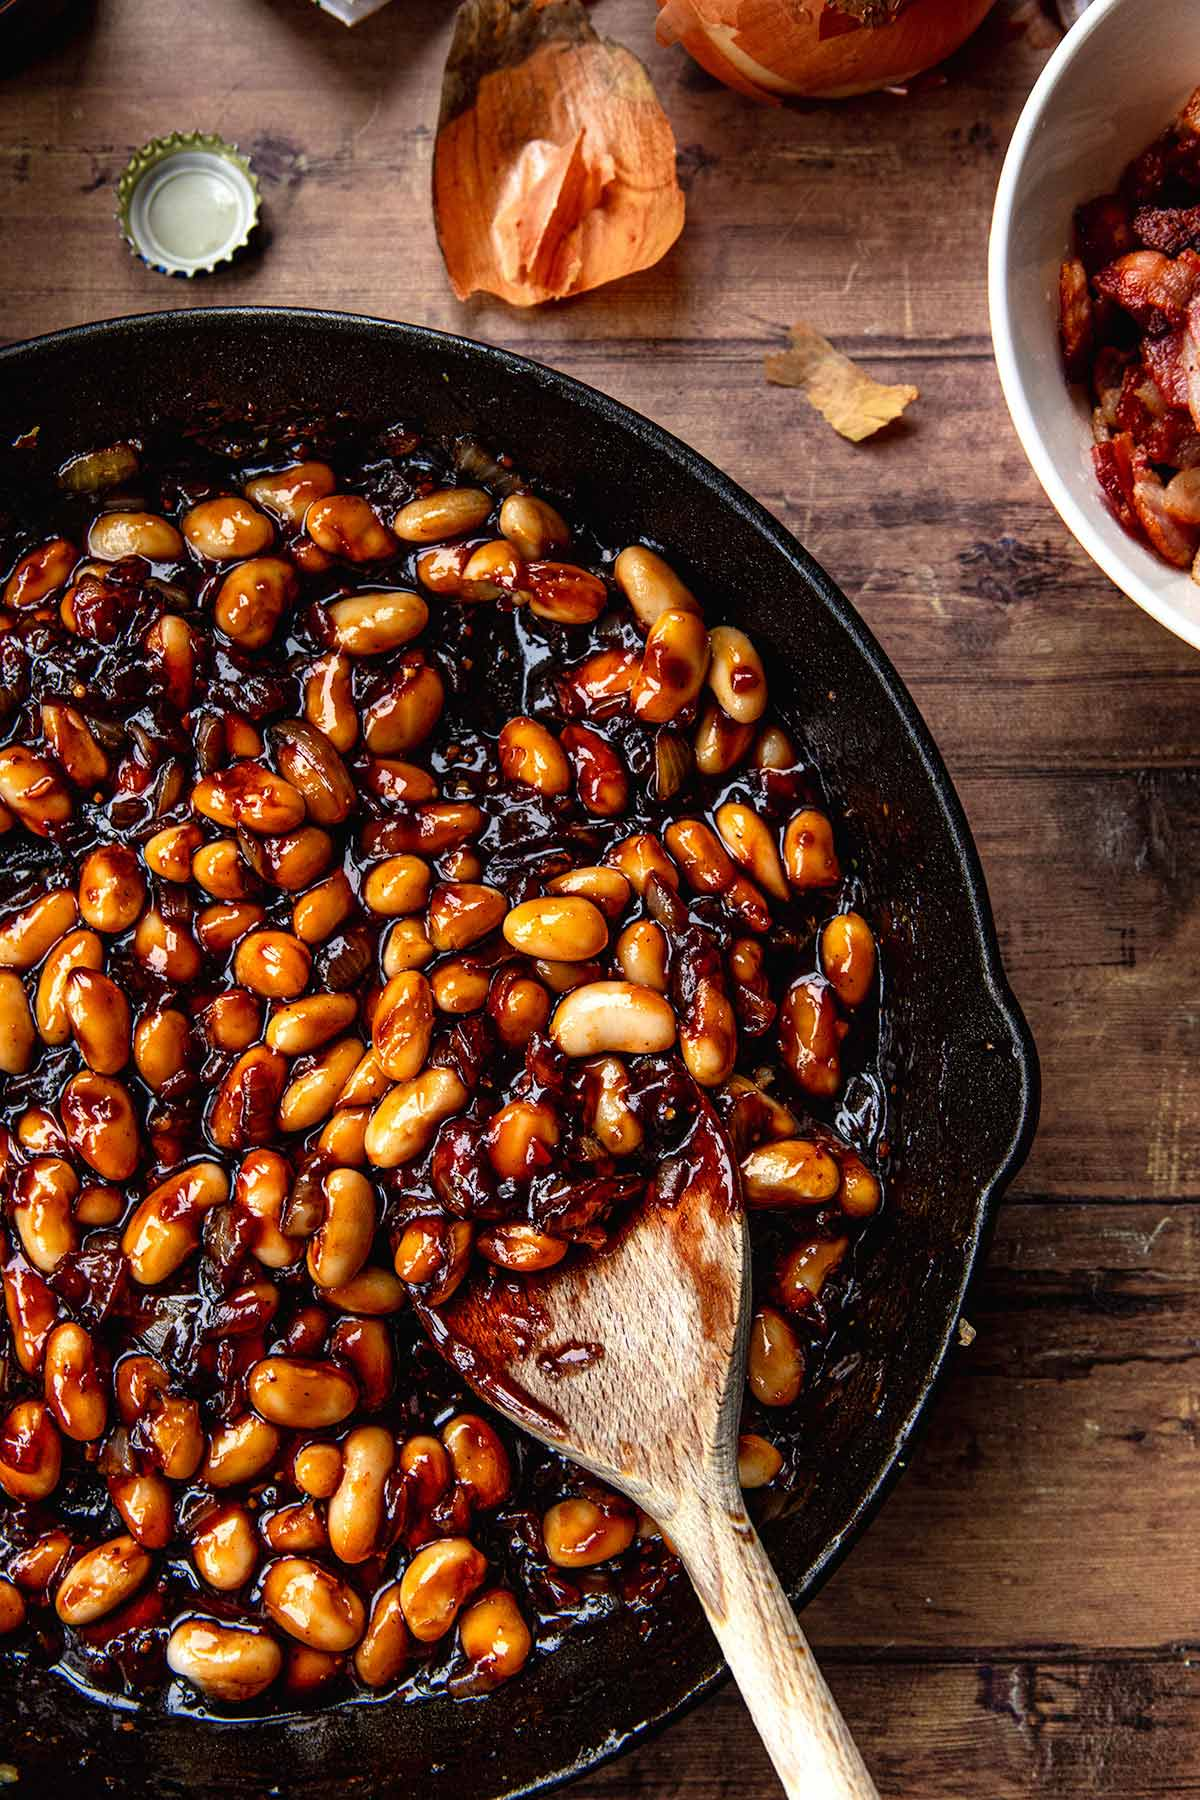 New England Baked Beans beans added to cast iron skillet